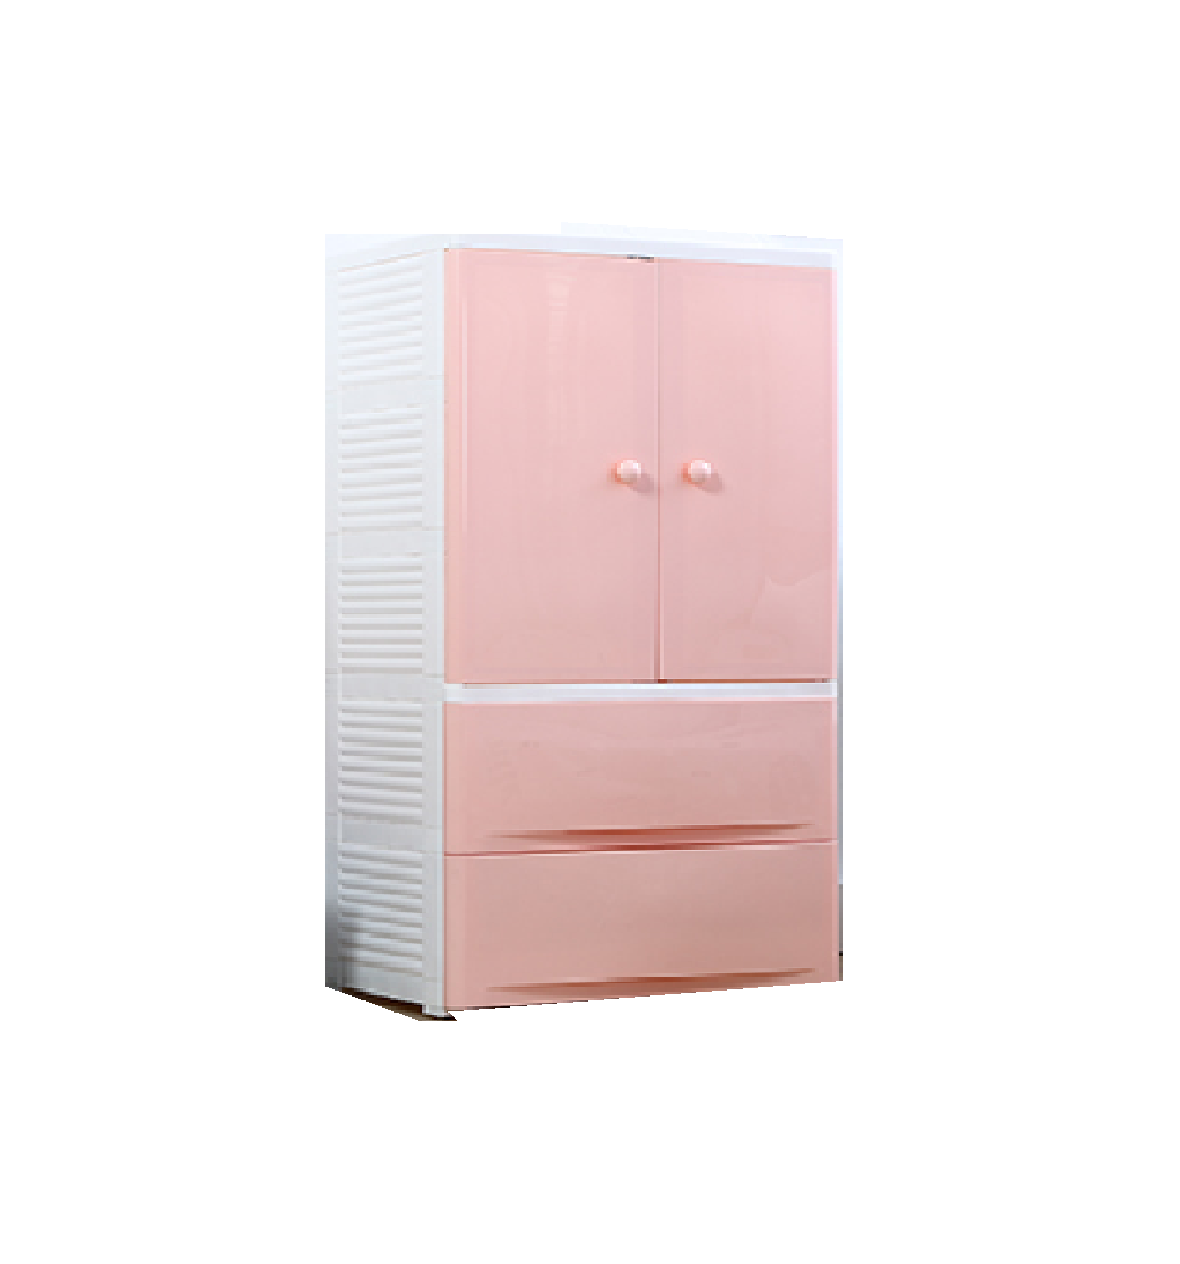 Fiber Plastic Wardrobe with Drawers/Hanging Storage Box DIY 2 Drawers +1 Clothes Hanging Space Pink 58 L 40 D 114 H CMS